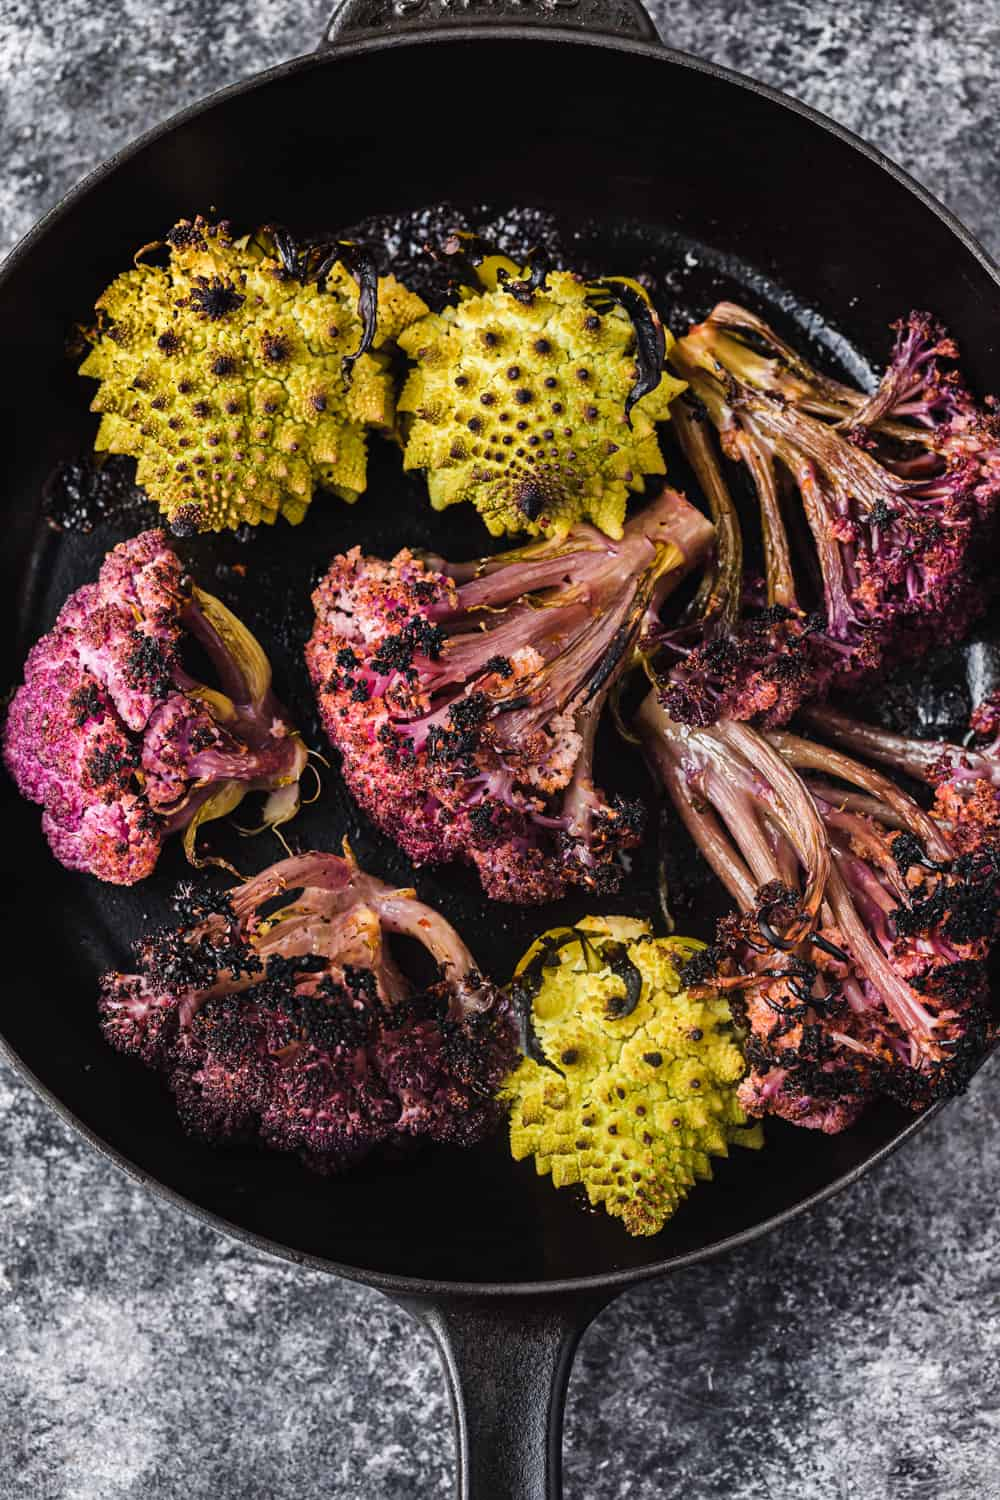 charred purple cauliflower and romanesco, just out of the oven to be used in the farmers market salad to be used in the farmers market salad